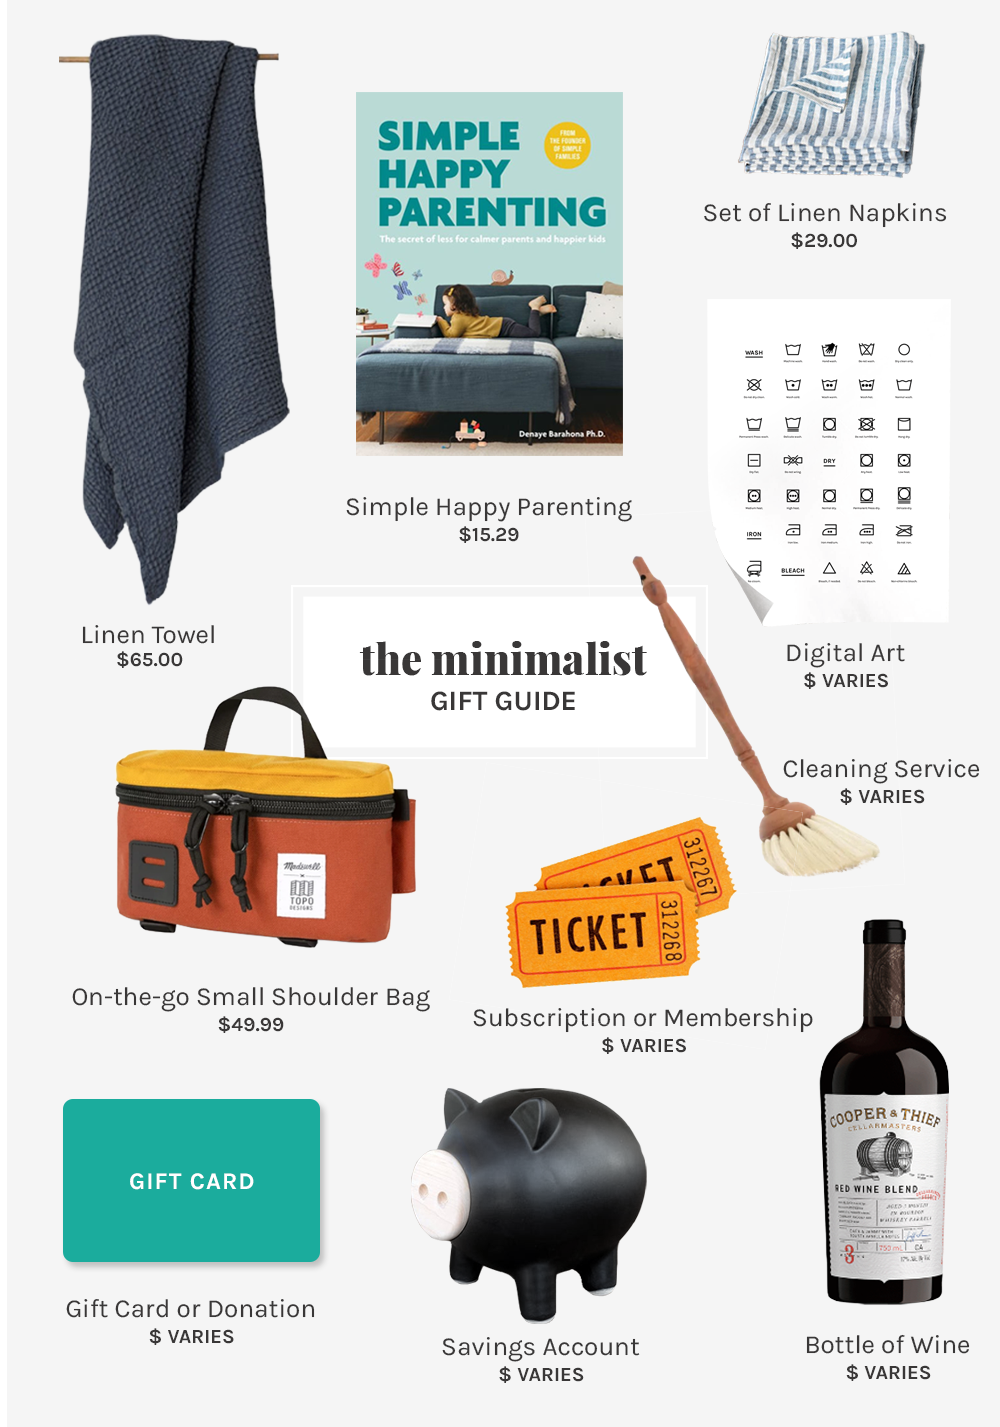 2019 Gift Guide for the minimalist